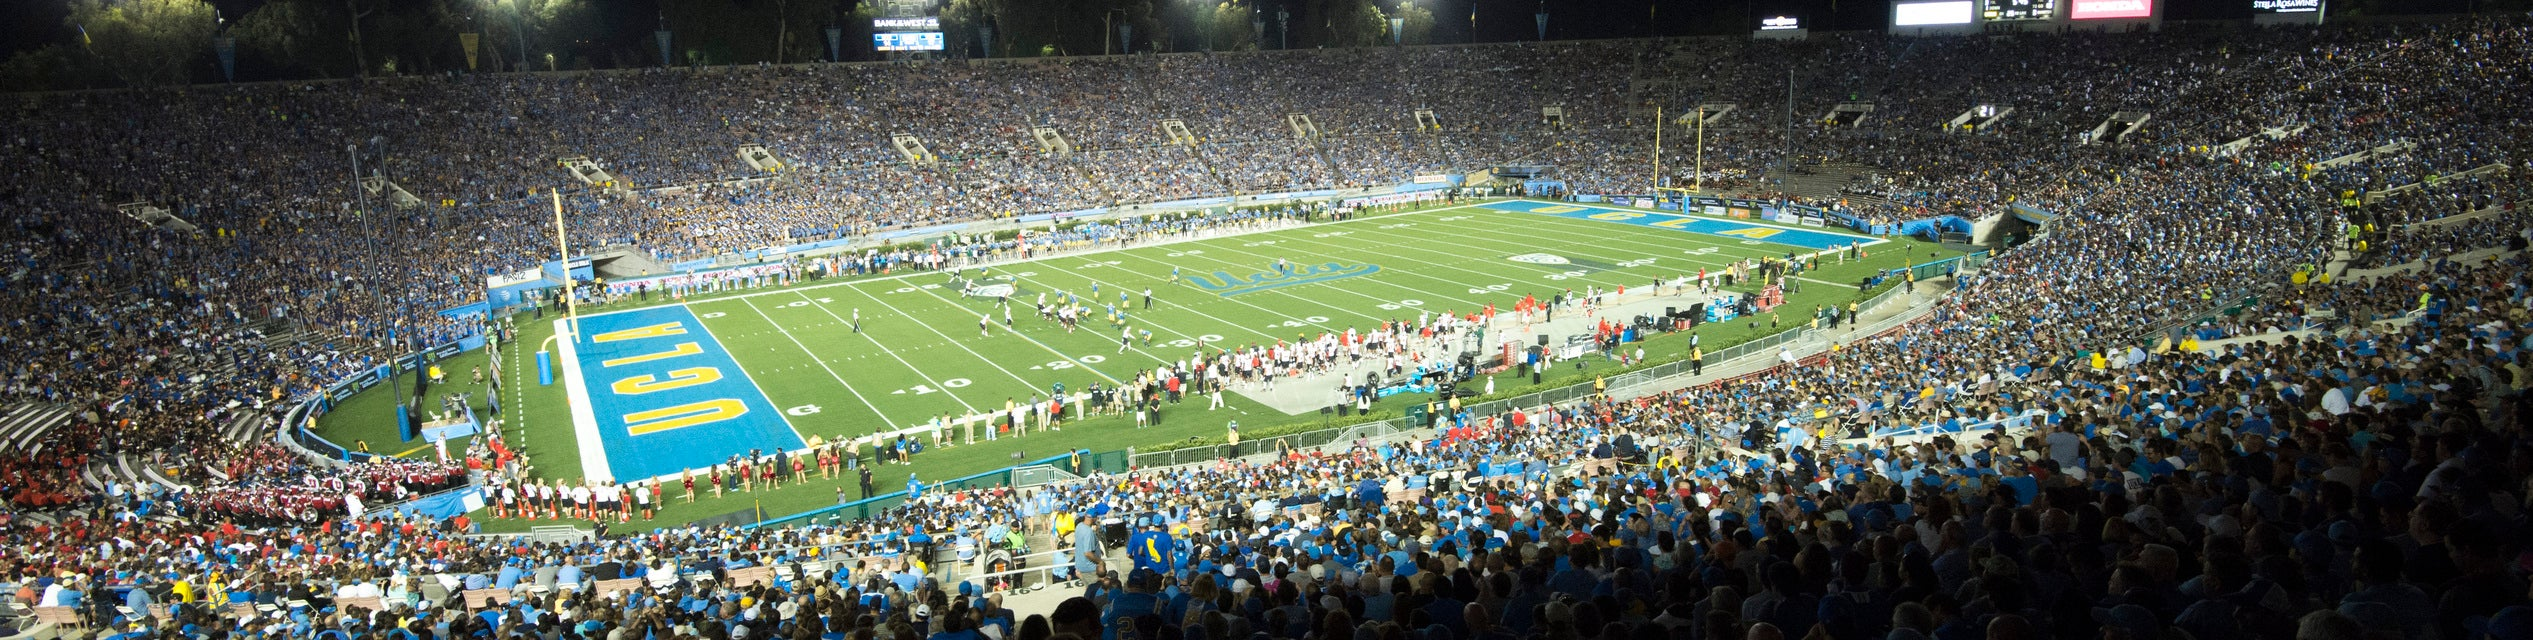 UCLA Football Tickets